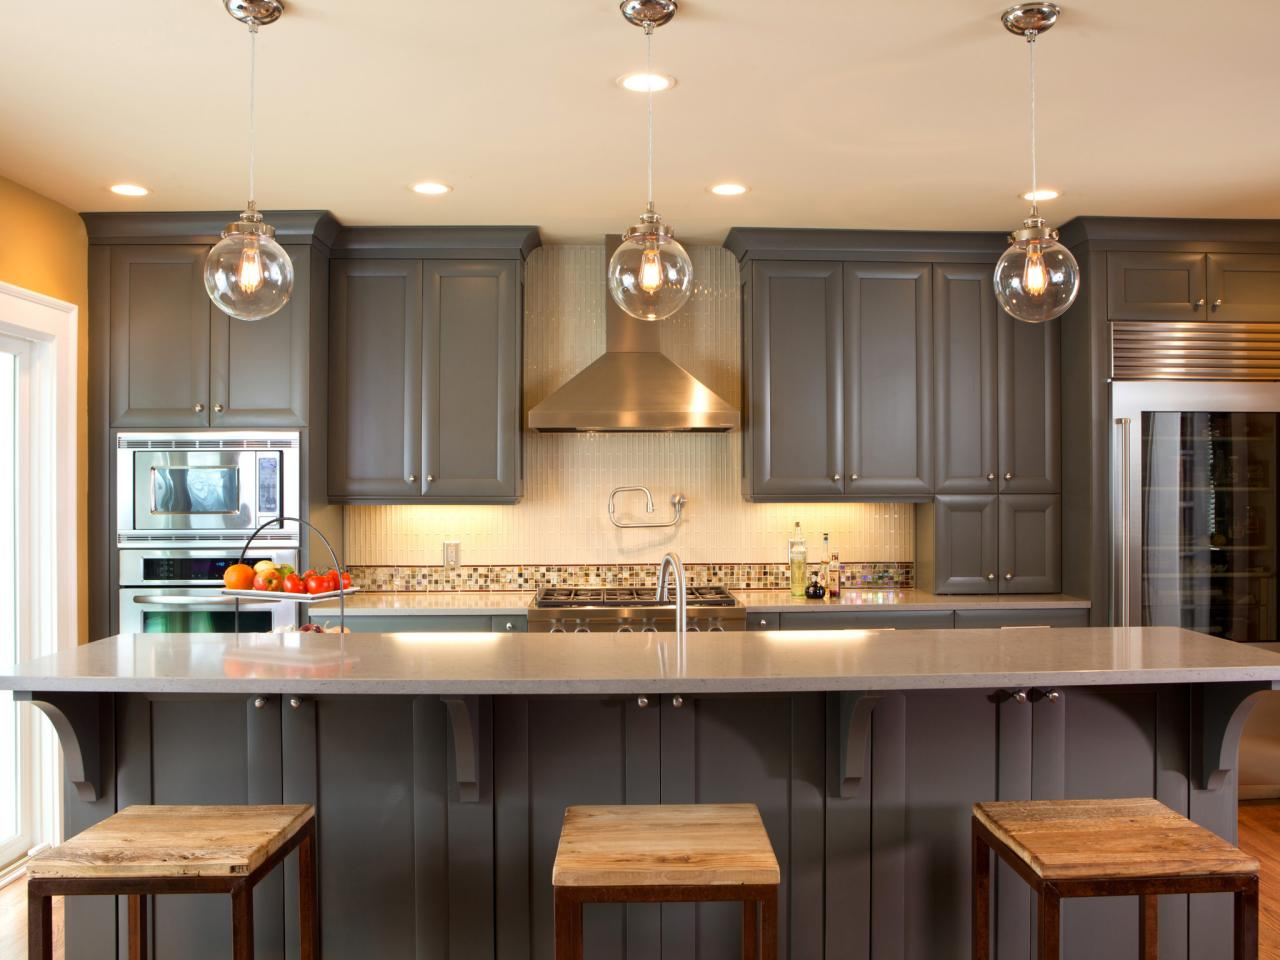 Ideas for painting kitchen cabinets pictures from hgtv hgtv Kitchen colour design tips